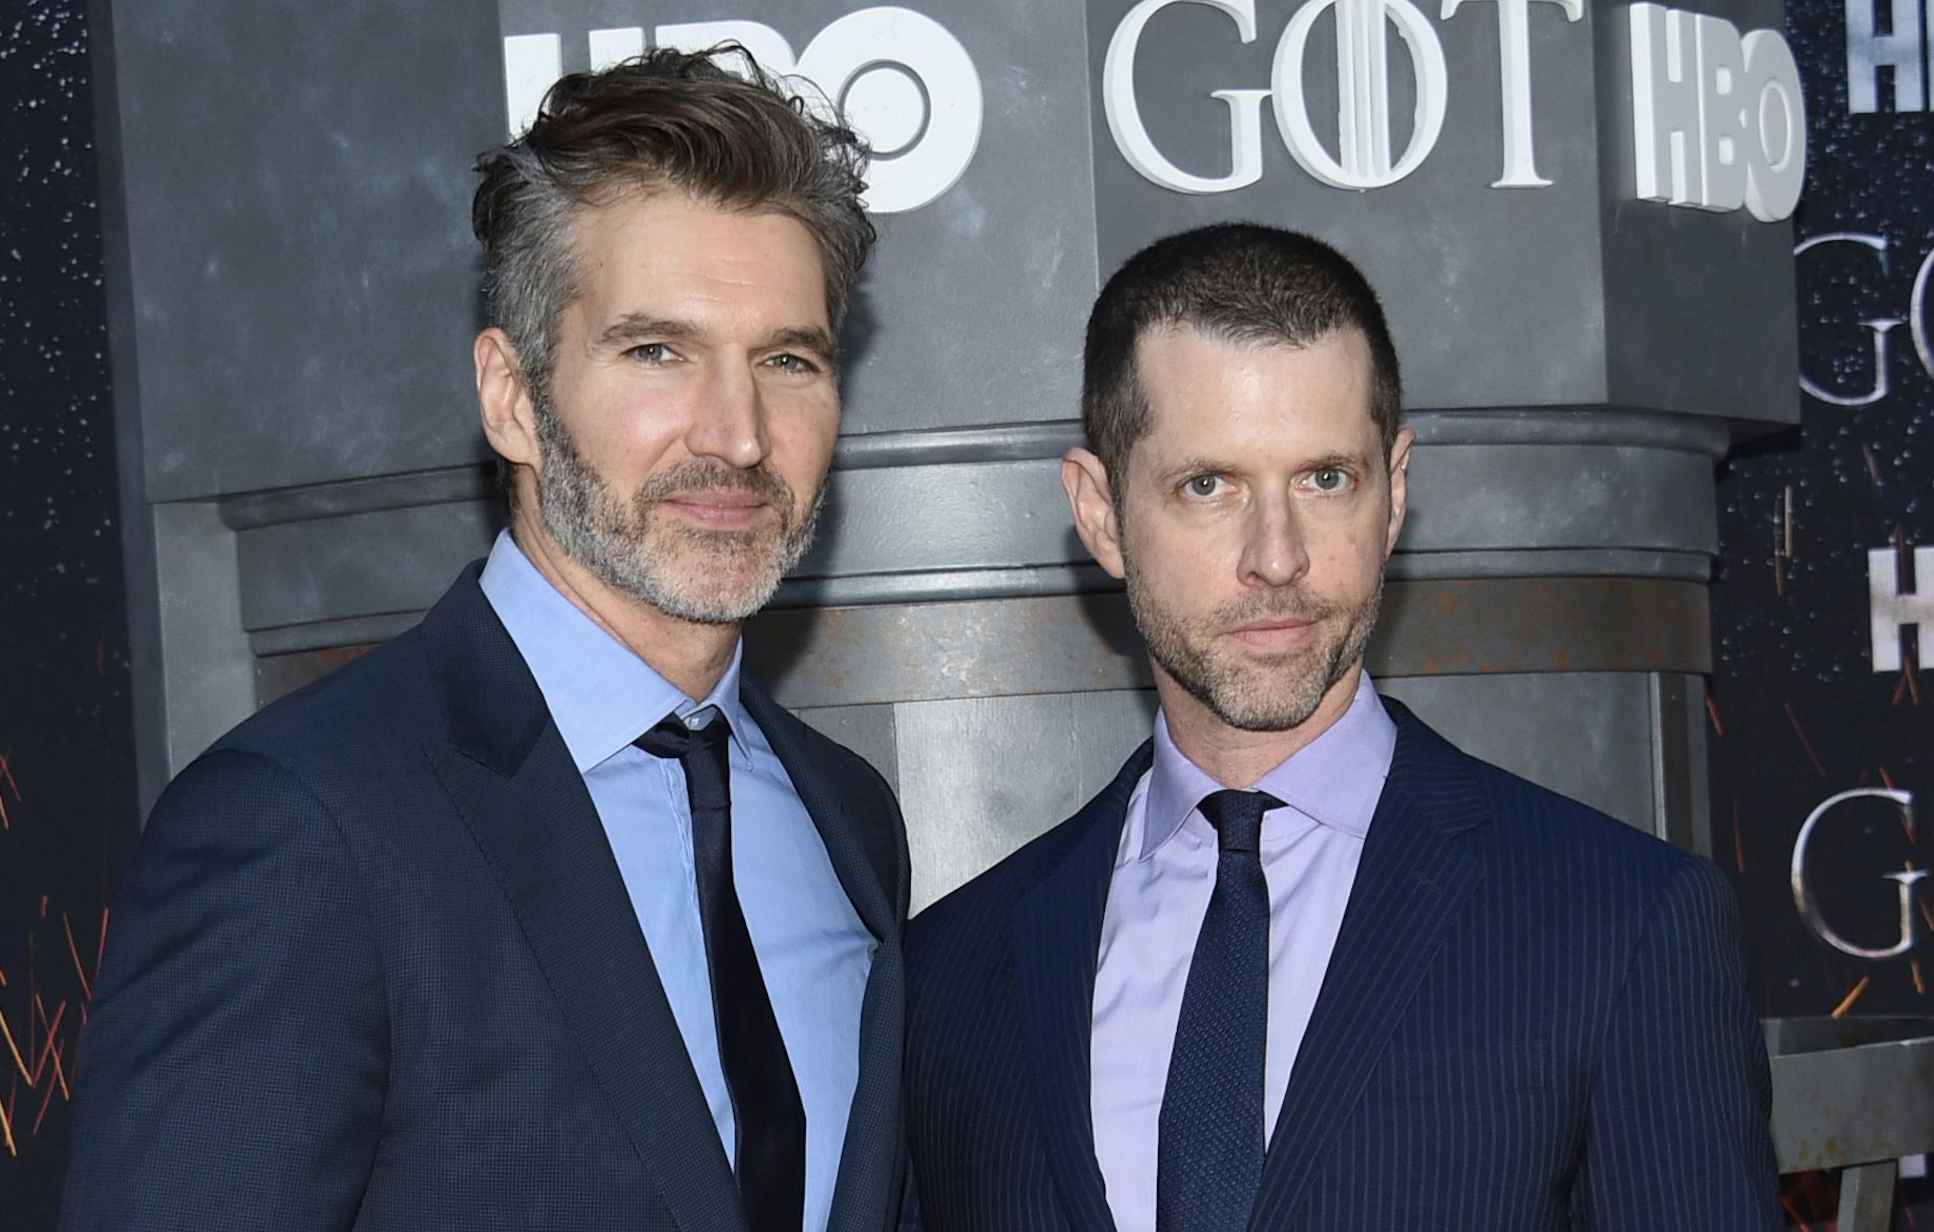 'Game of Thrones' Showrunners David Benioff and D.B. Weiss Drop Out of Comic-Con Panel